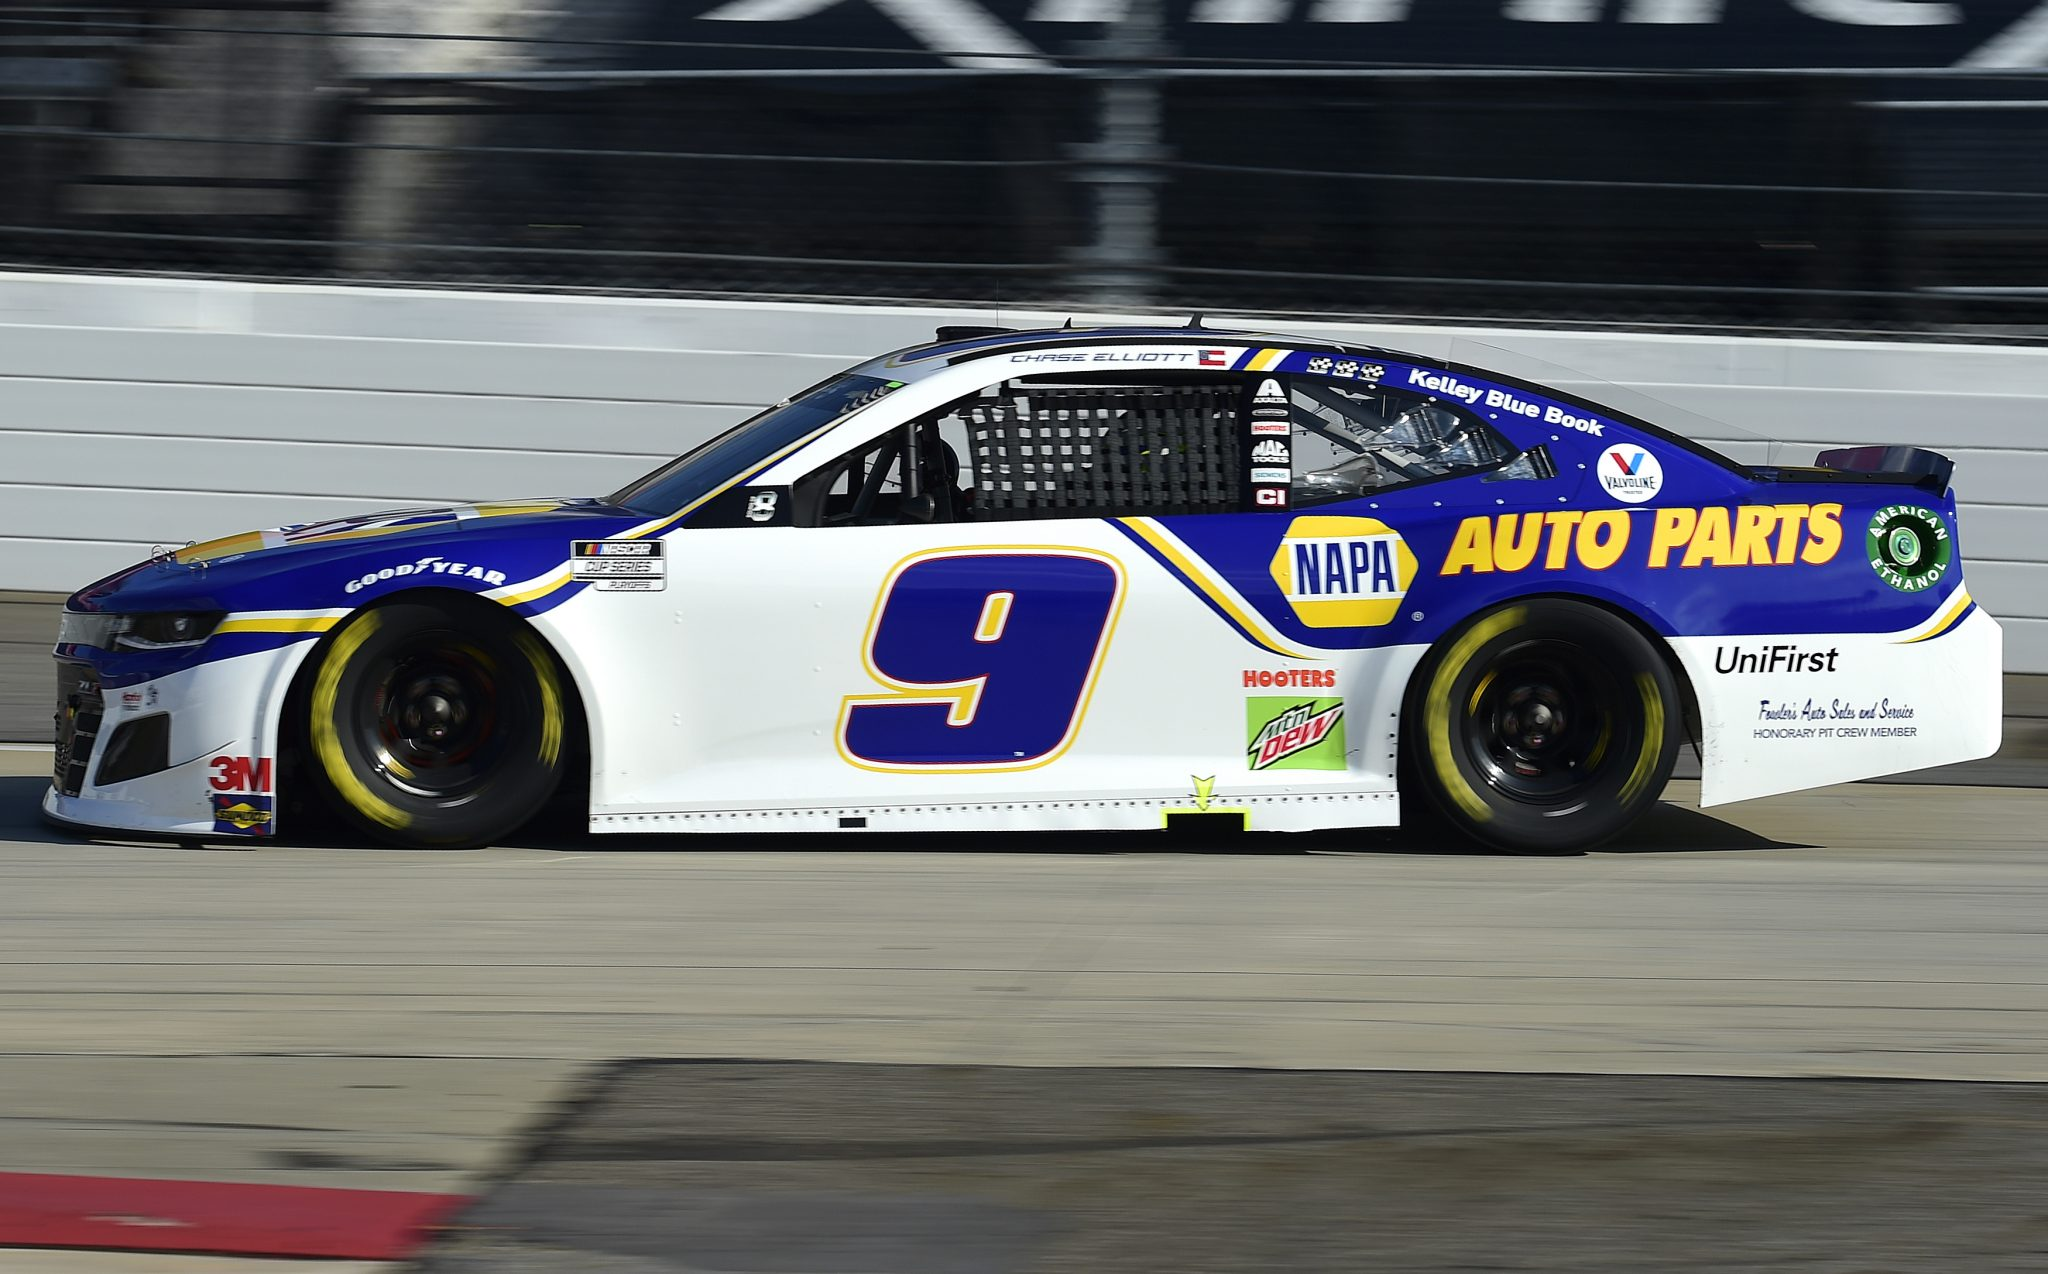 MARTINSVILLE, VIRGINIA - NOVEMBER 01: Chase Elliott, driver of the #9 NAPA Auto Parts Chevrolet, drives during the NASCAR Cup Series Xfinity 500 at Martinsville Speedway on November 01, 2020 in Martinsville, Virginia. (Photo by Jared C. Tilton/Getty Images) | Getty Images